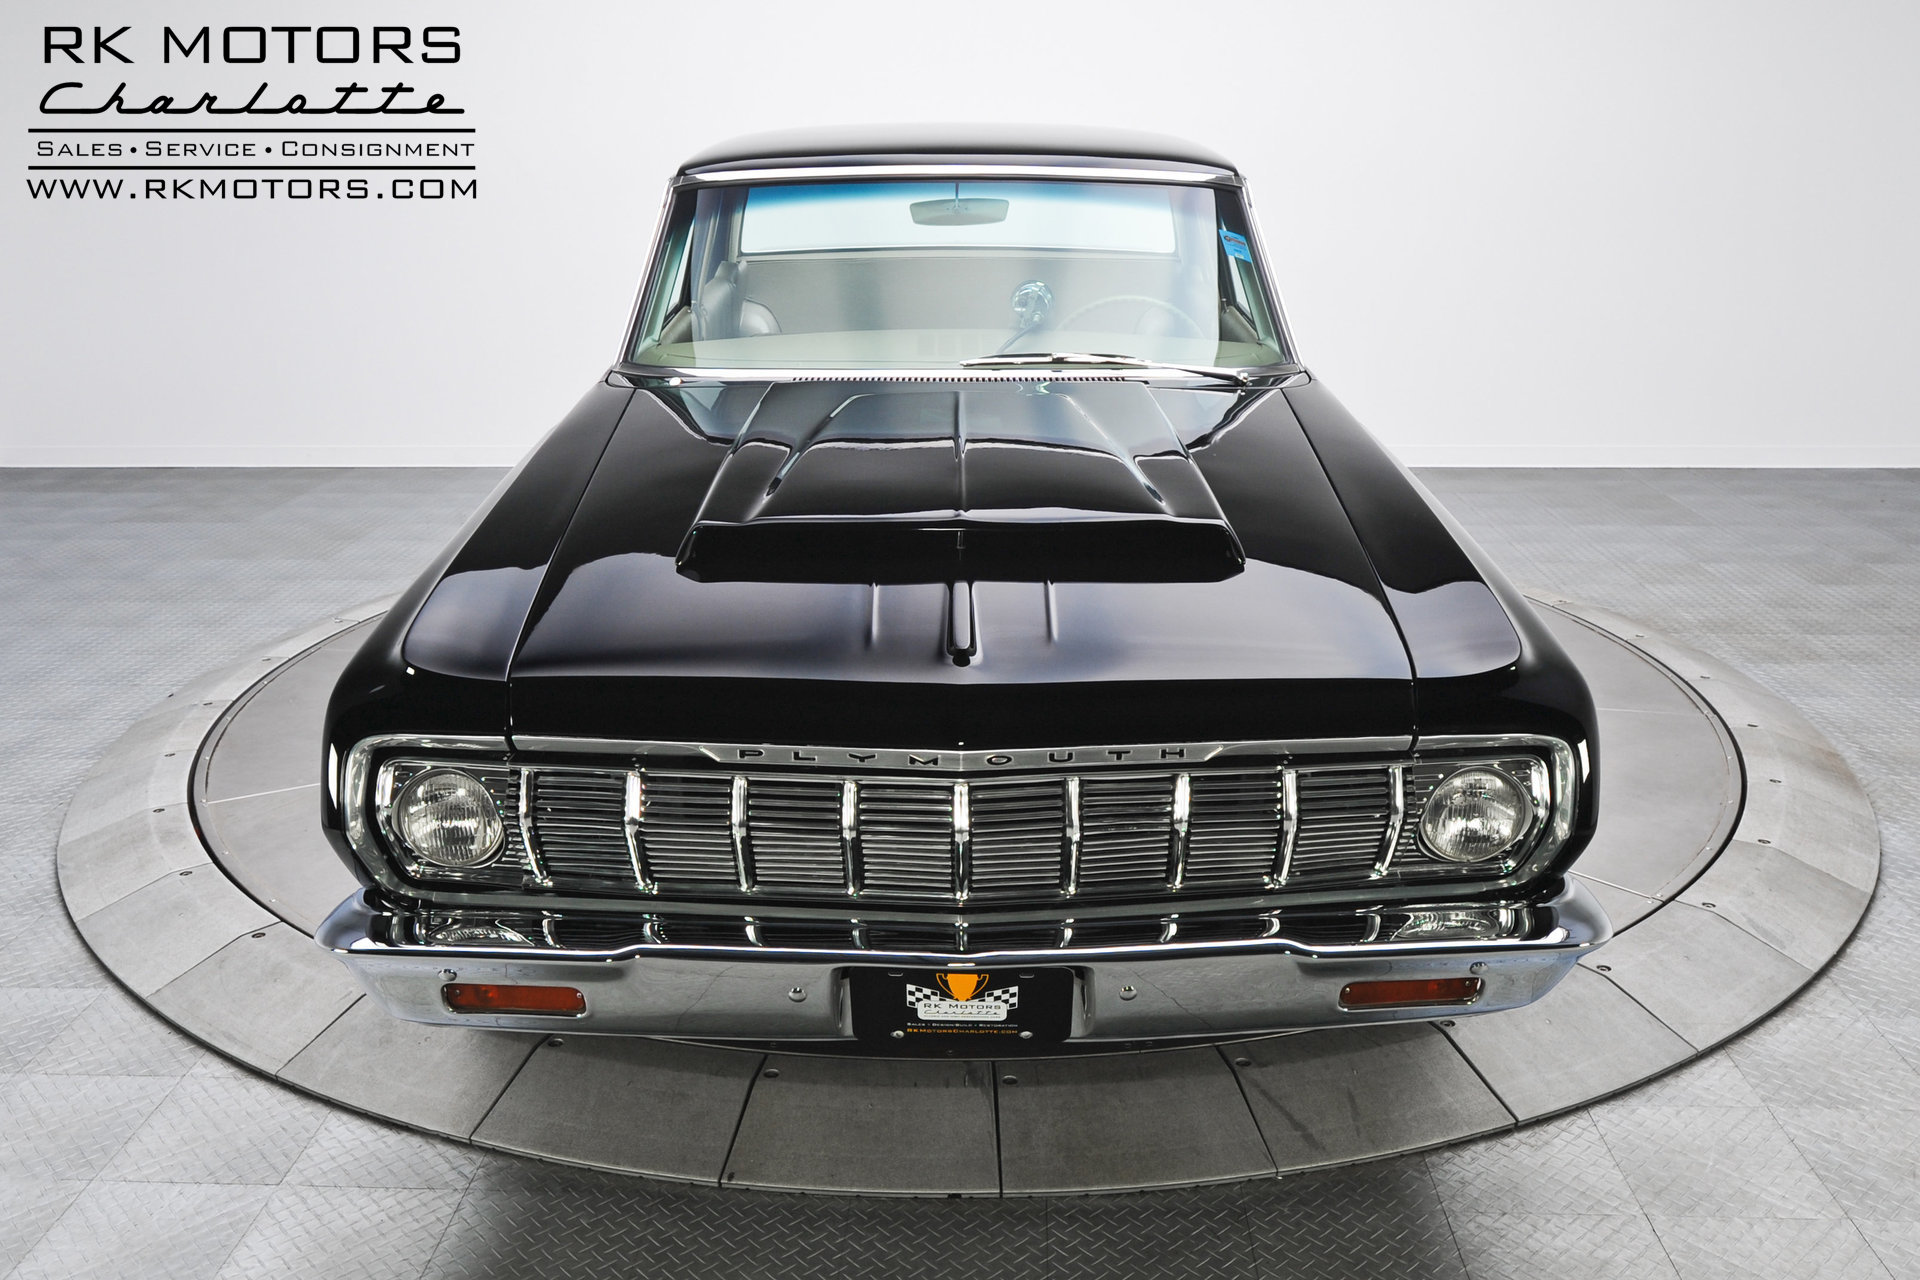 134001 1964 Plymouth Savoy Rk Motors Classic And